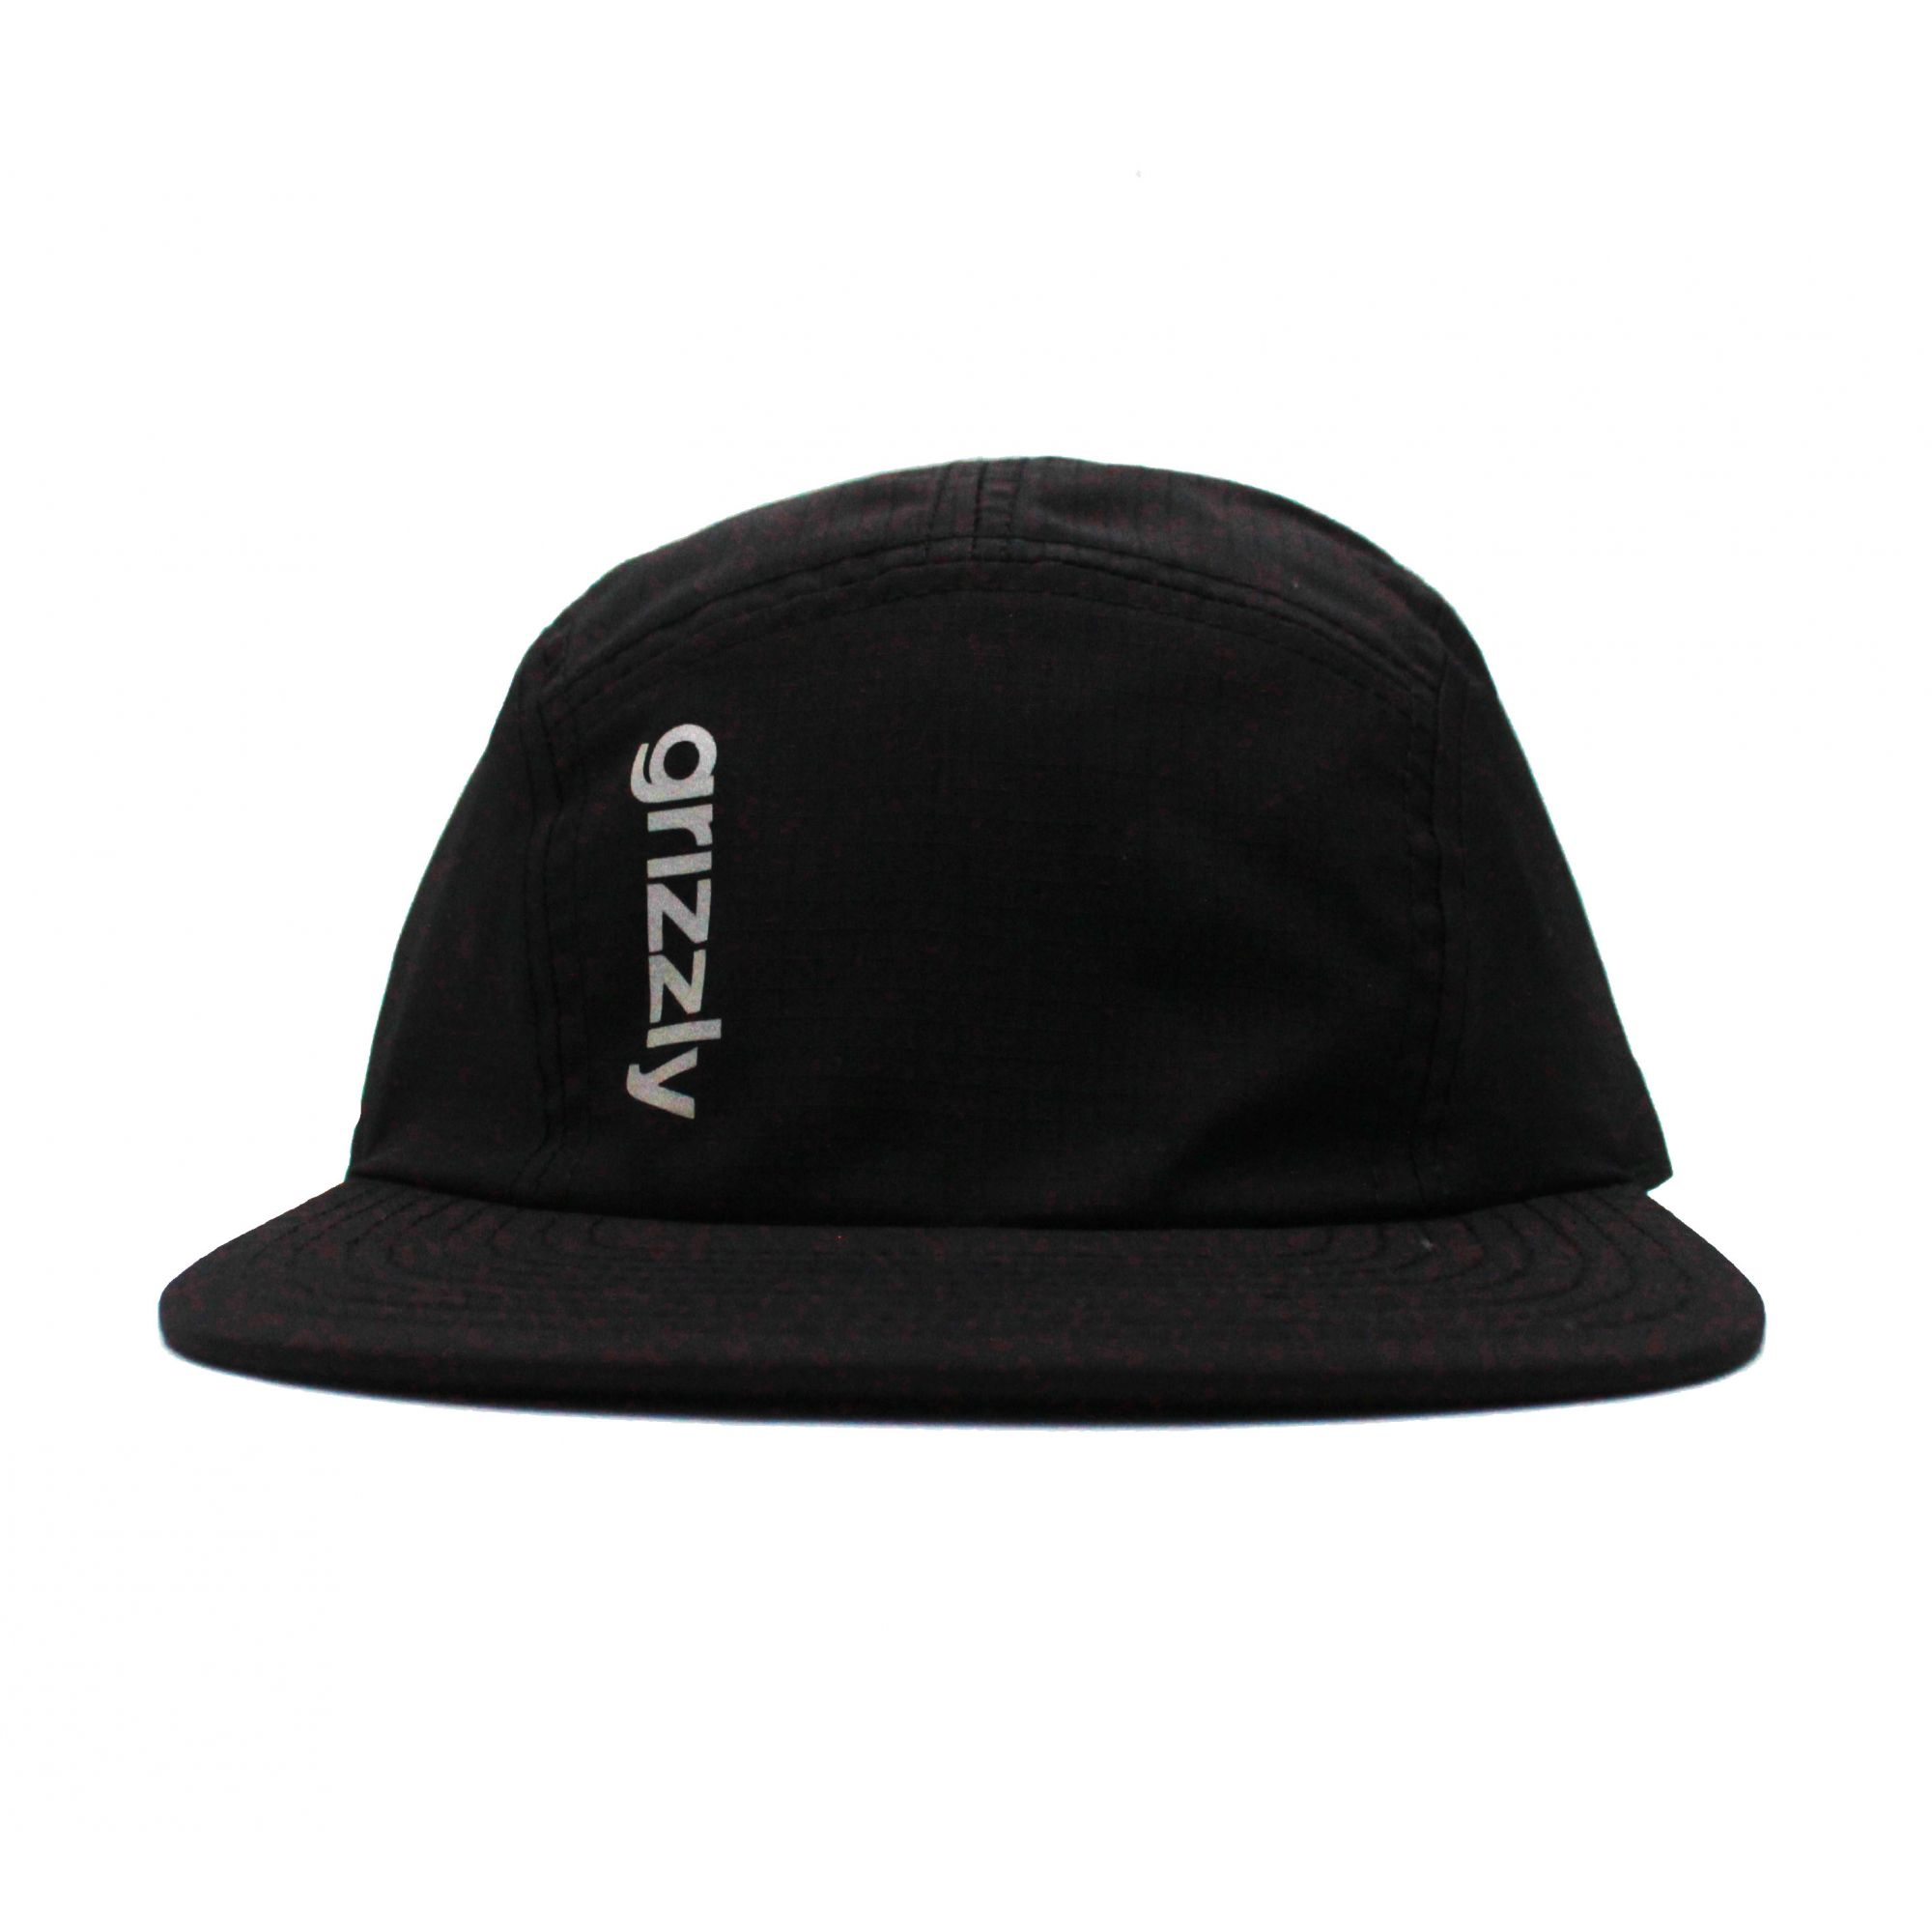 Boné Grizzly Five Panel Nocturnal Preto